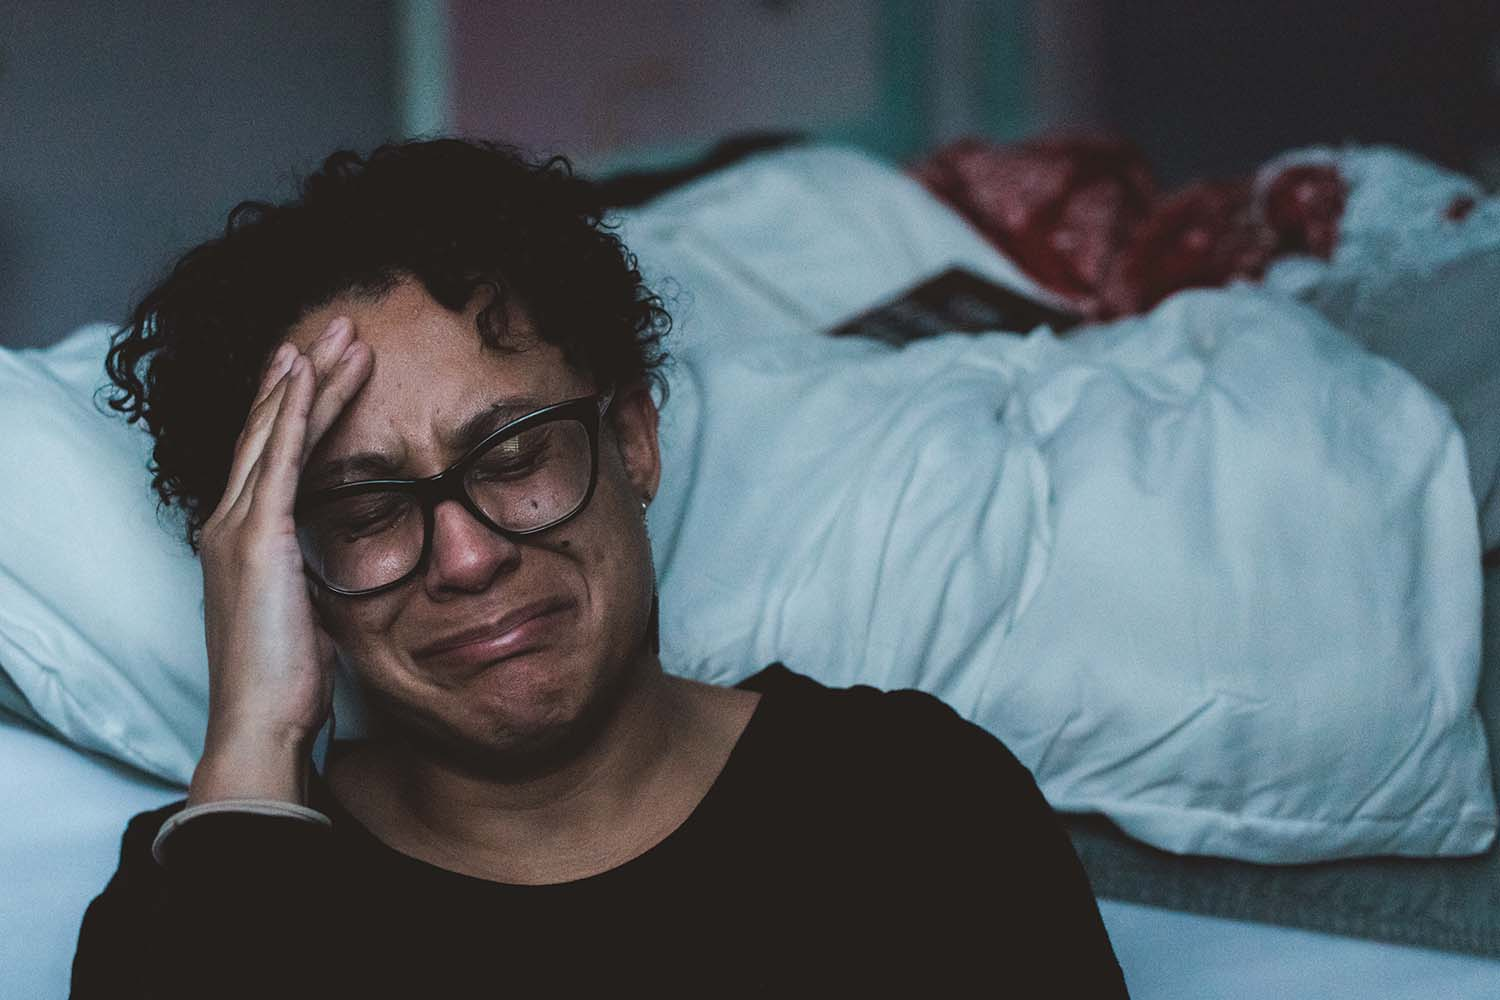 A mother crying in her bedroom